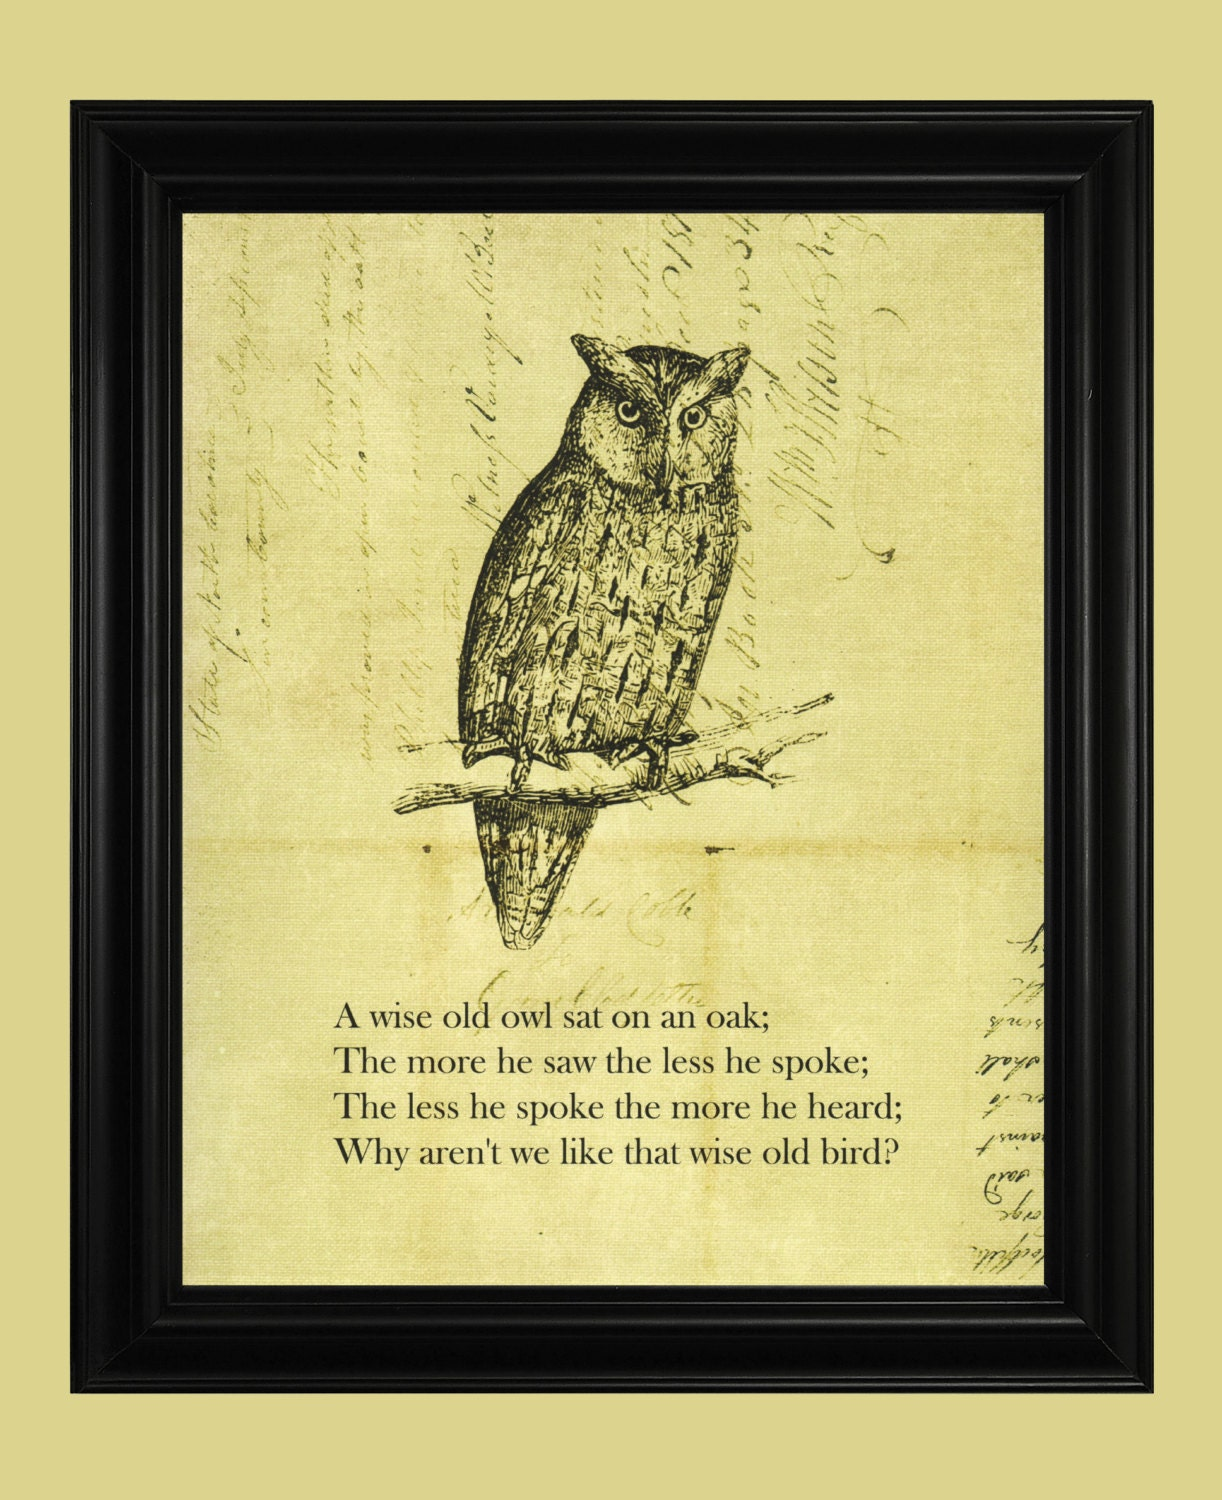 Vintage Owl Illustration Wise Old Owl Drawing Hoot Owl Art